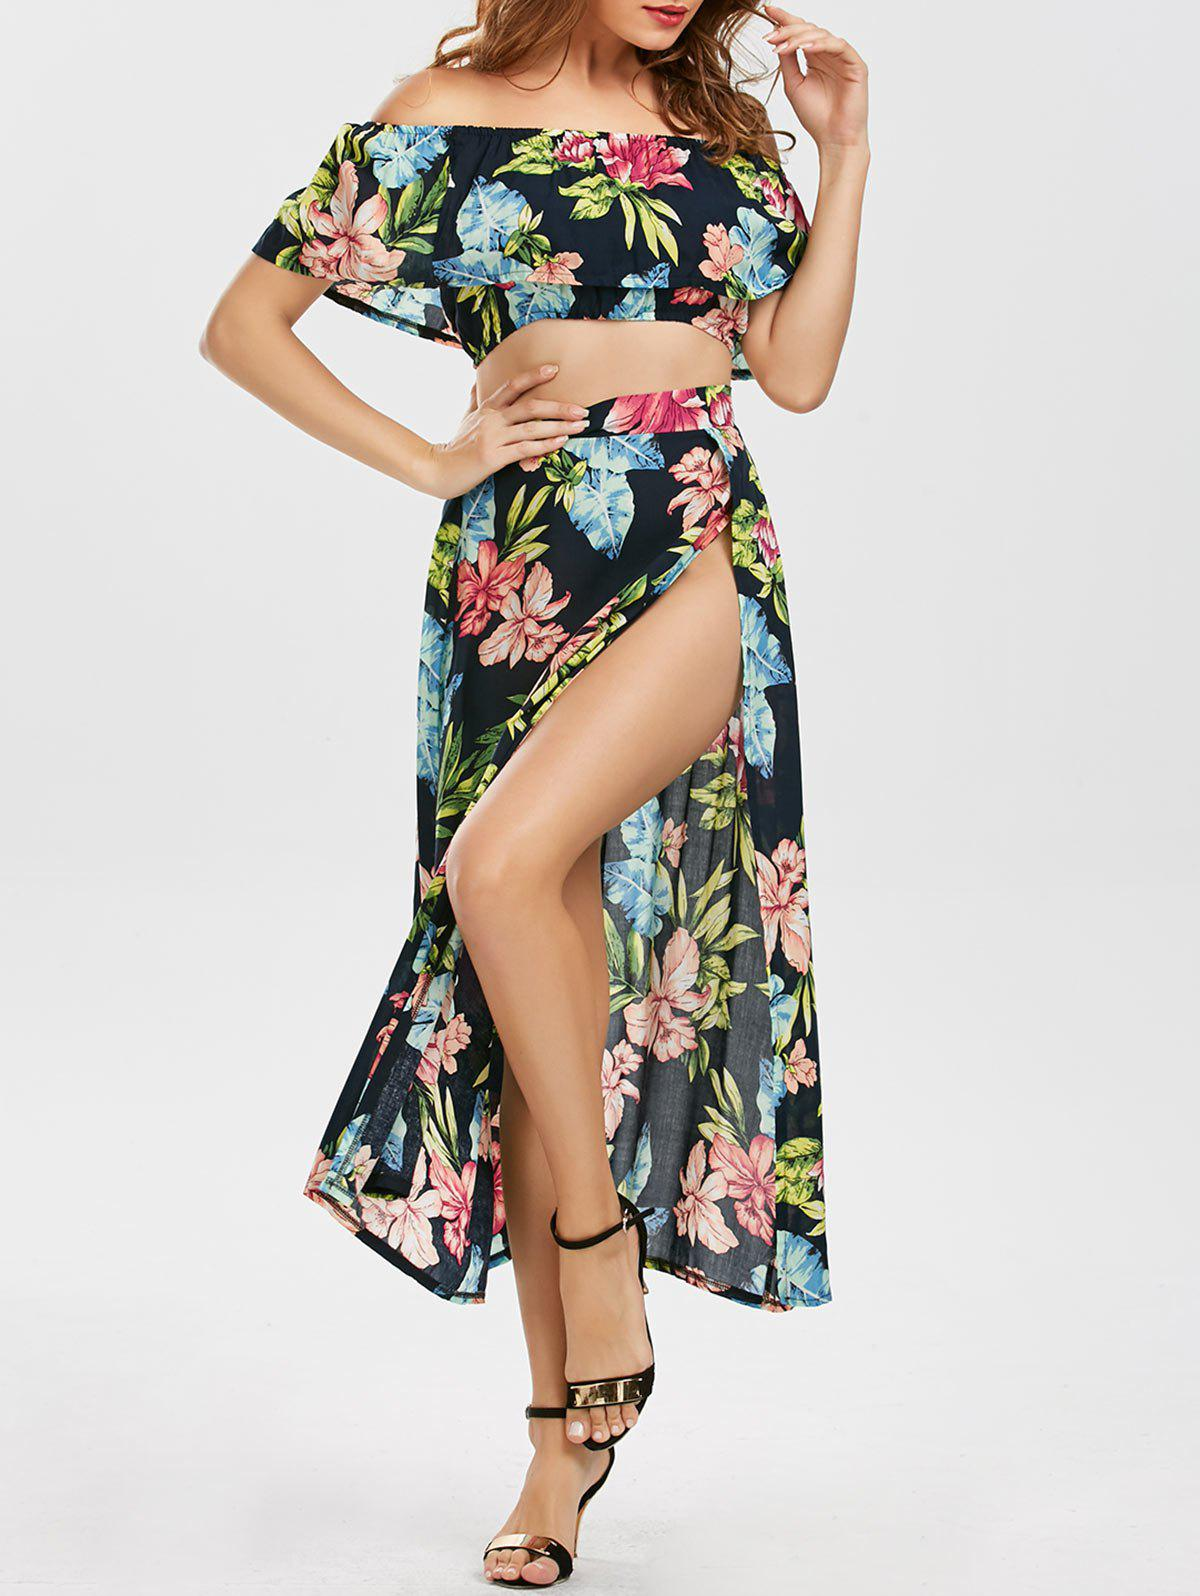 Flounce Floral Swing Three Piece Dress - FLORAL M